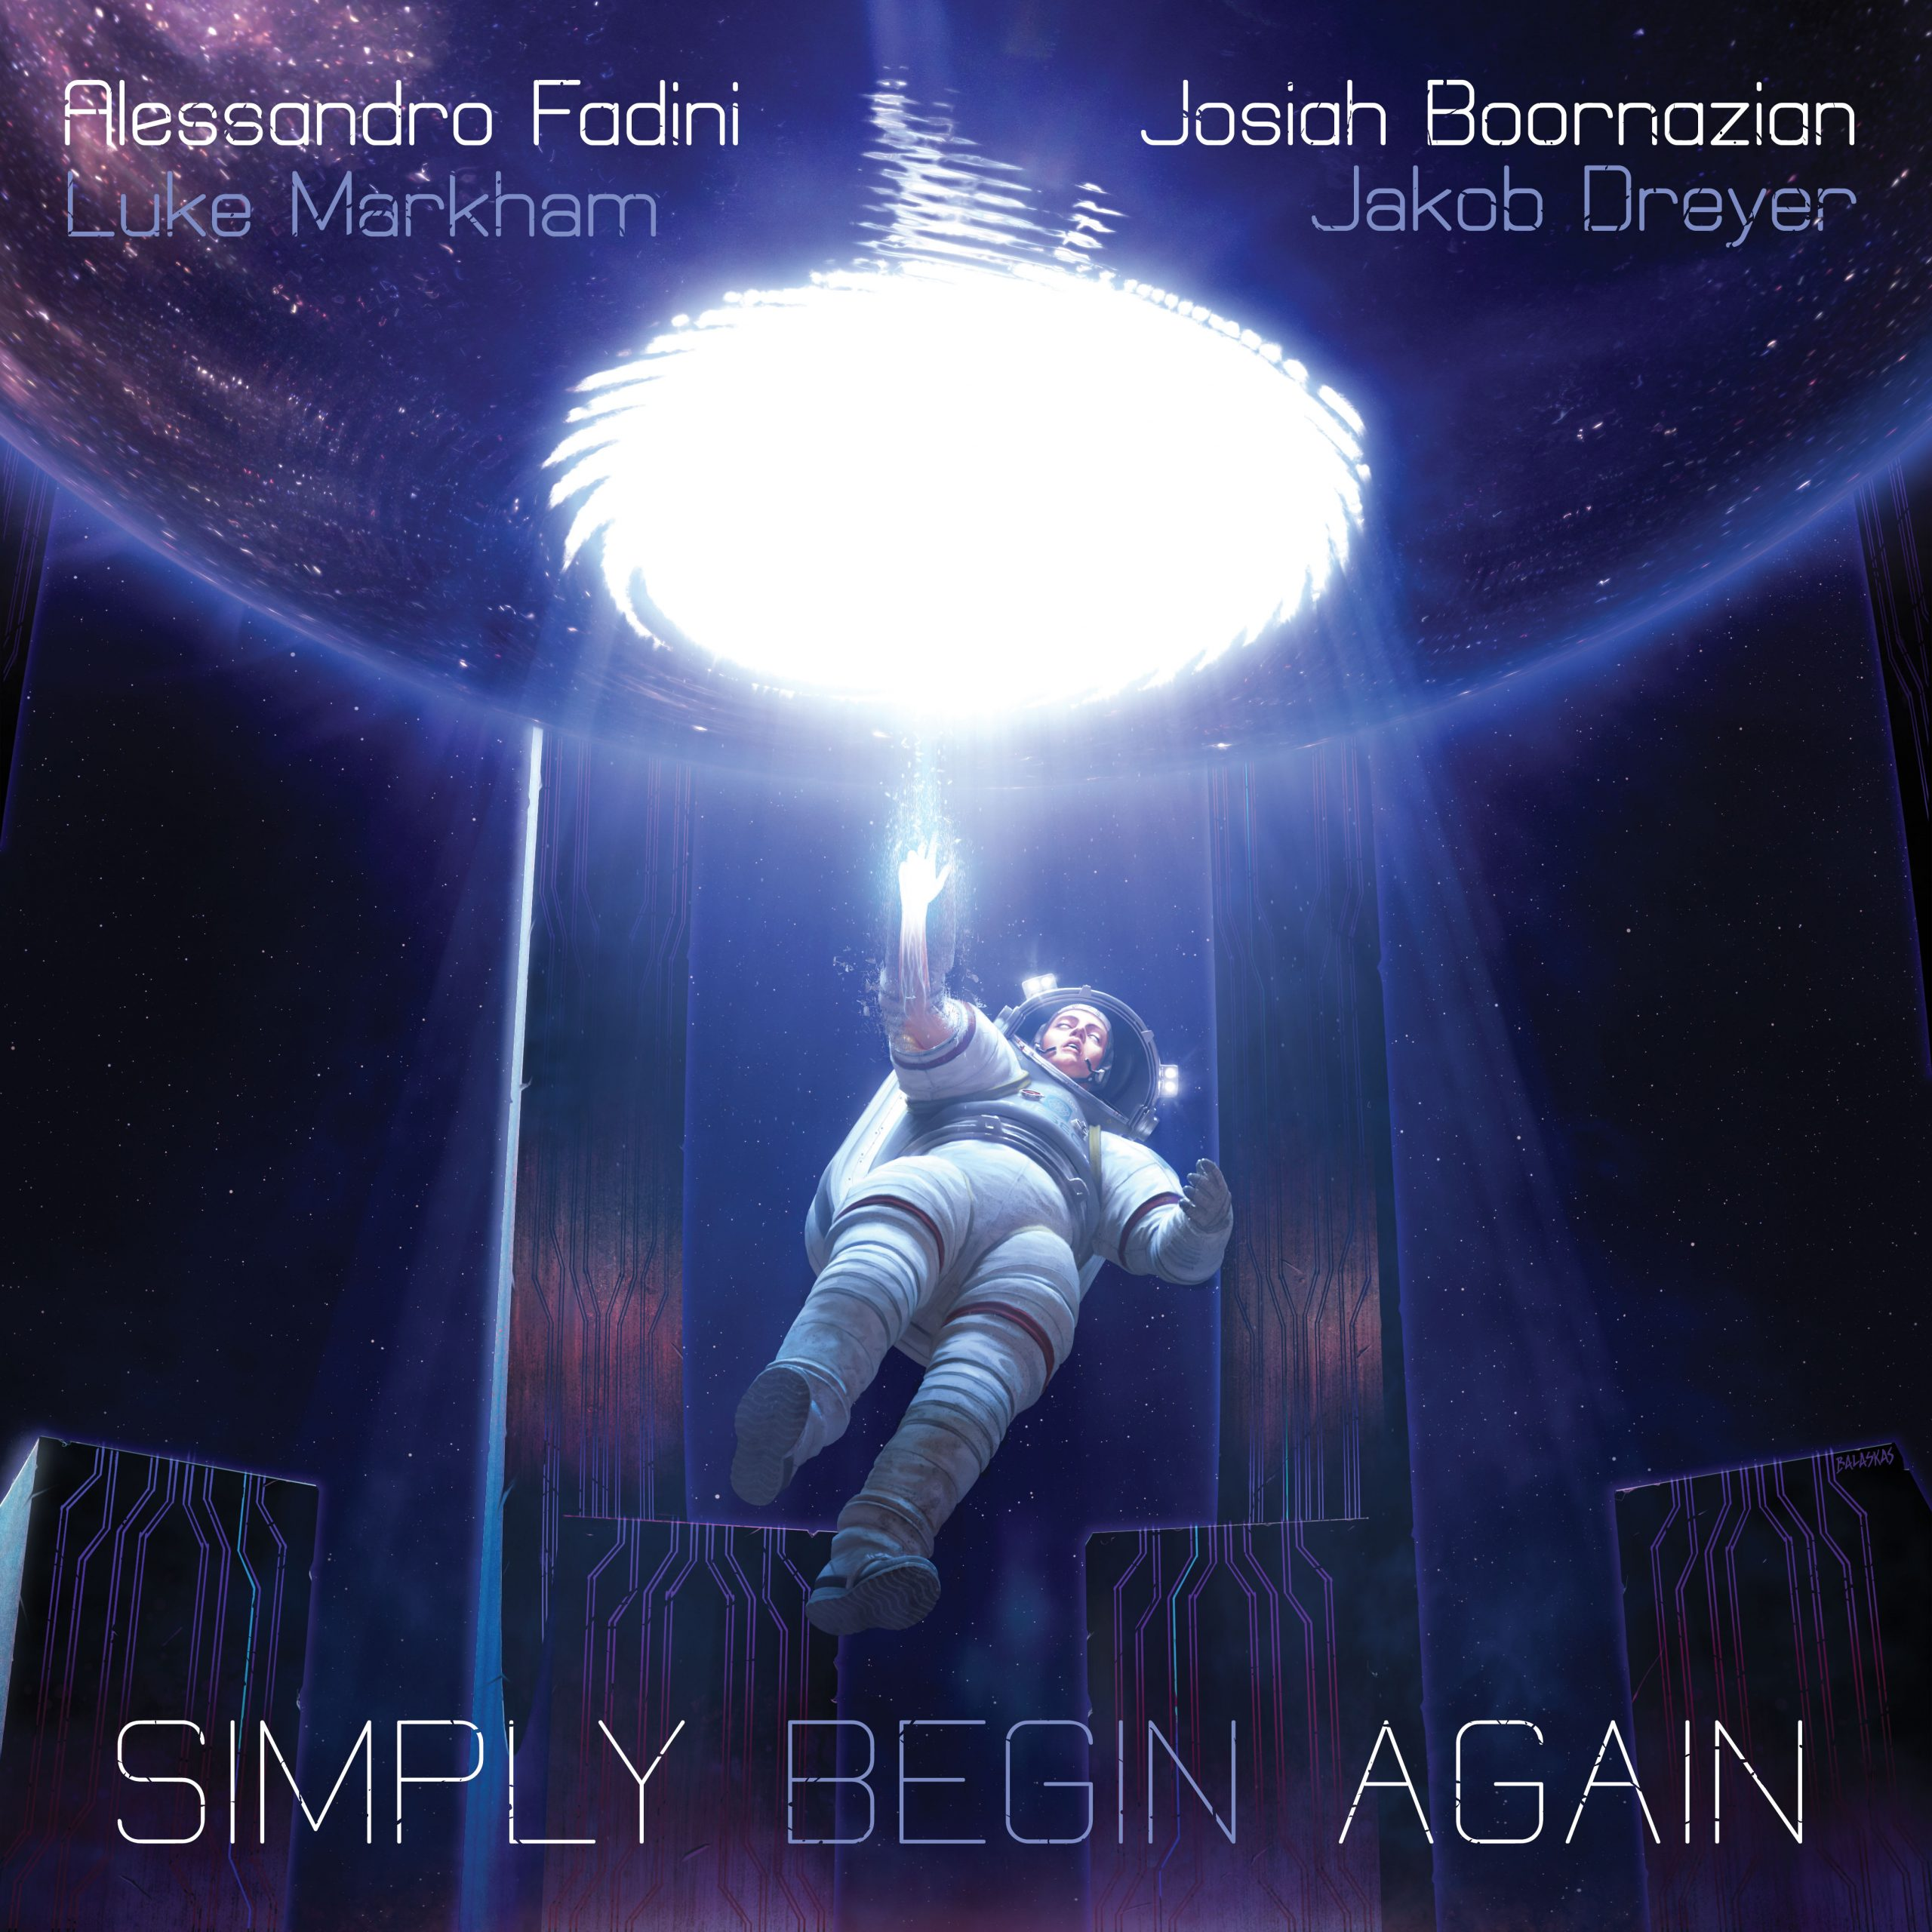 OUT NOW: Alessandro Fadini and Josiah Boornazian's SIMPLY BEGIN AGAIN (Fresh Sound New Talent)